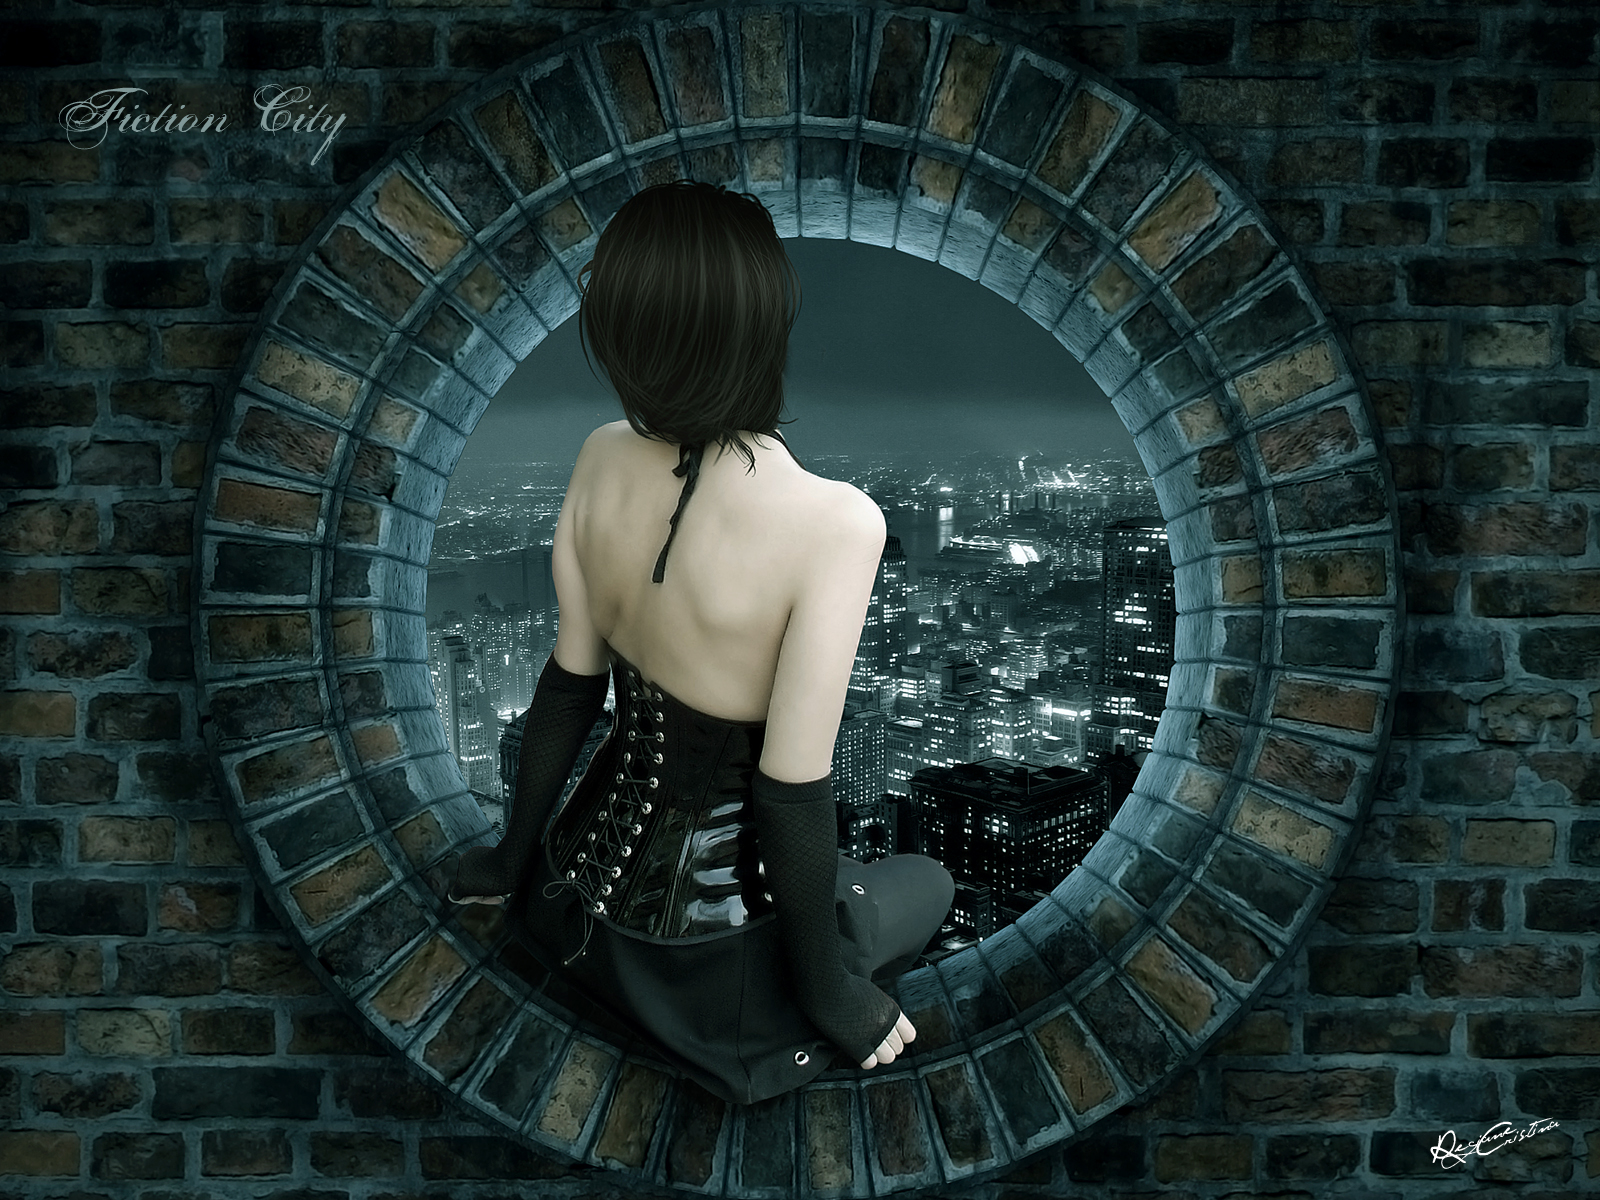 fiction city wallpaper by desideriasp customization wallpaper other 1600x1200